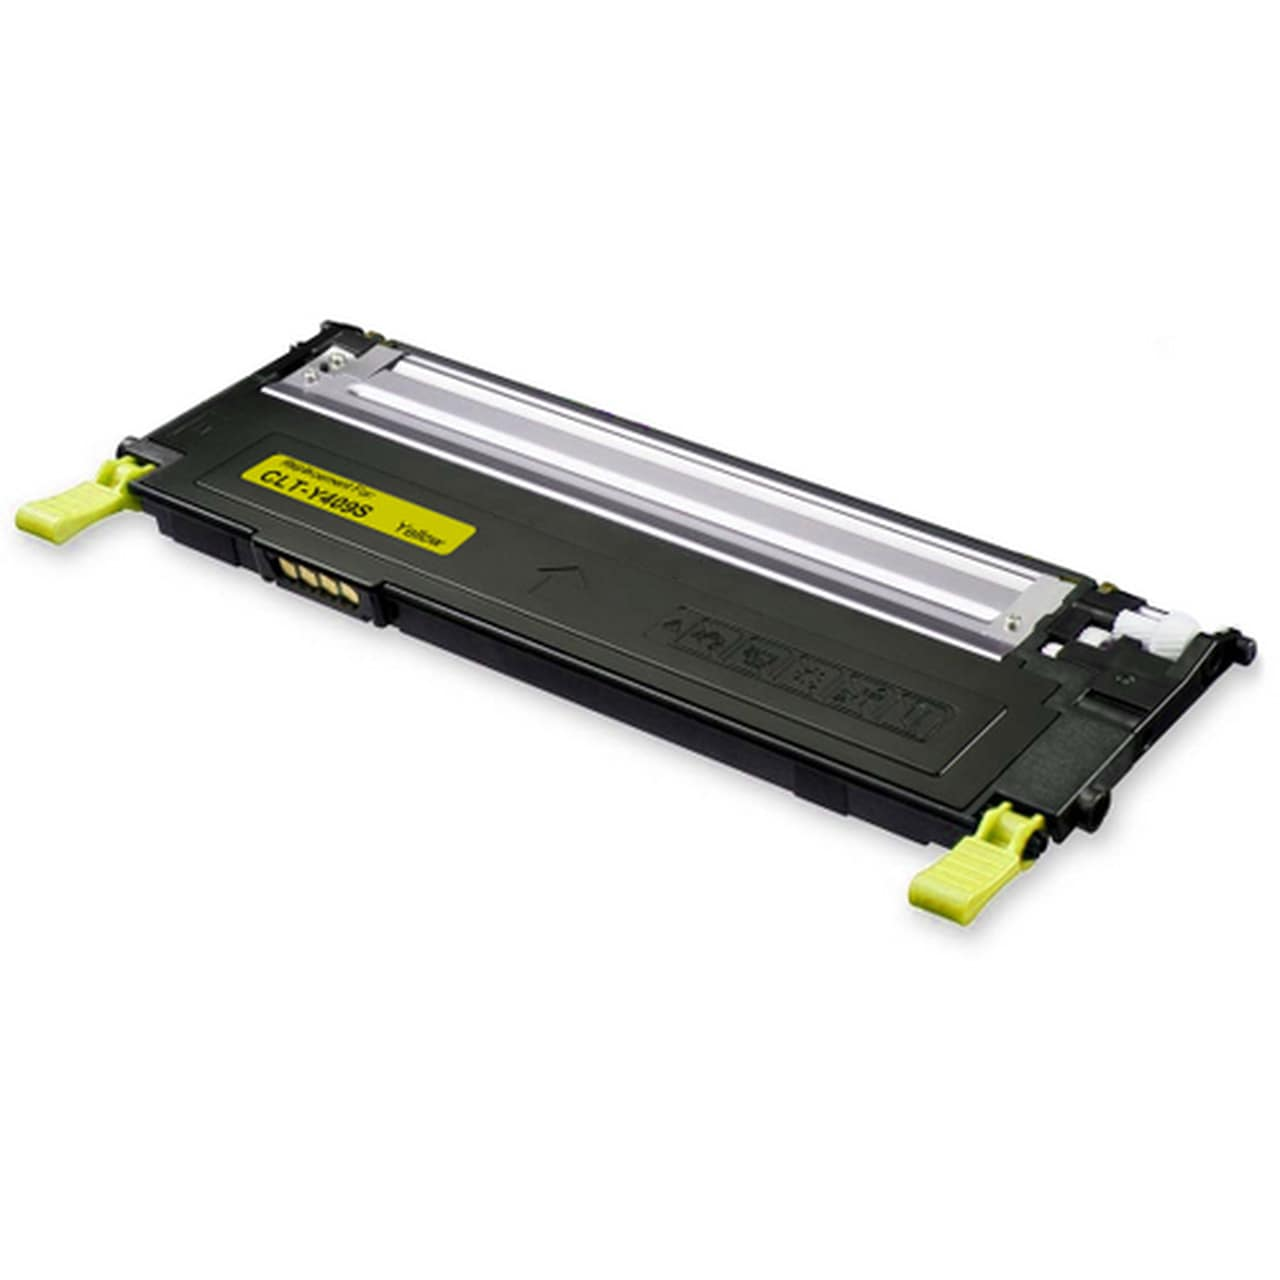 CLT-Y409S Toner Cartridge - Samsung Remanufactured (Yellow)